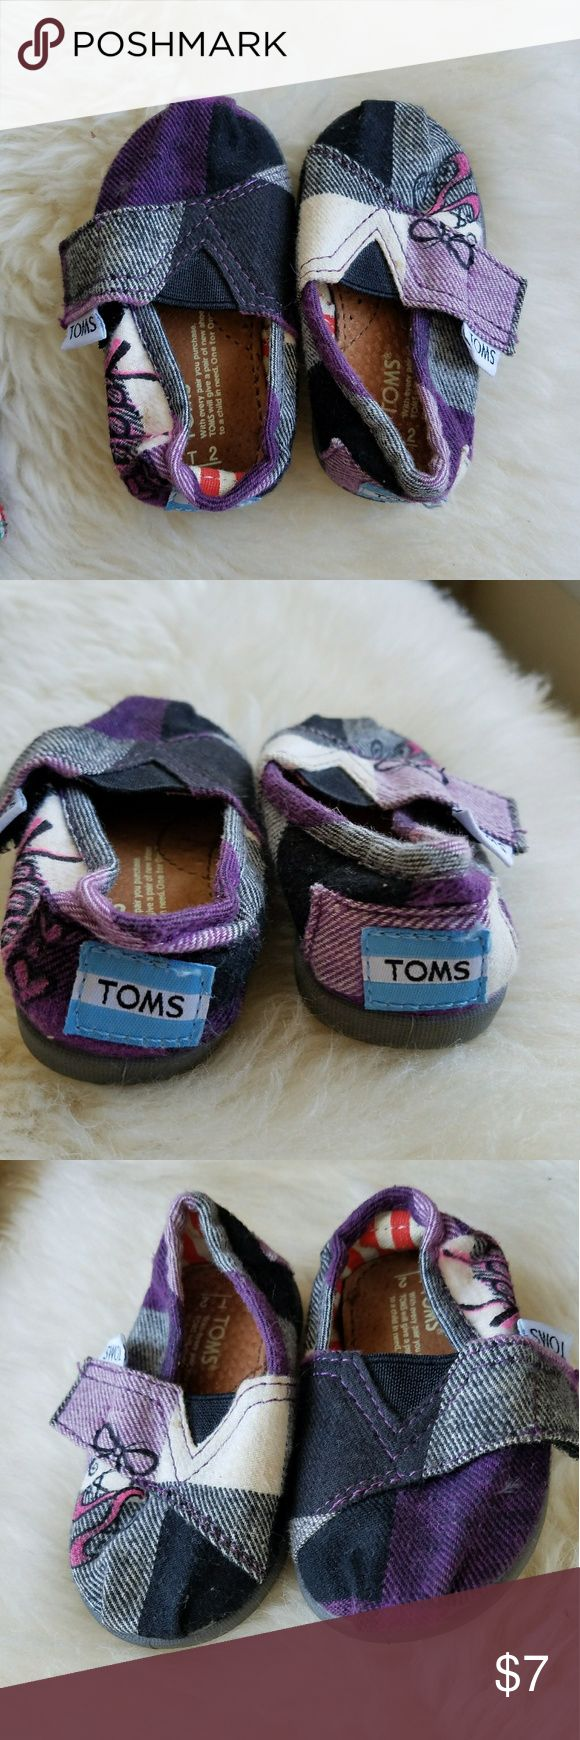 """Embellished Purple Plaid classics Baby Tom's classic size T2 . Purple black and gray checker/plaid. These have been embellished with a unique design in black and pink ballet shoes and """"Vada"""". Cute if you like the name TOMS Shoes Sneakers"""